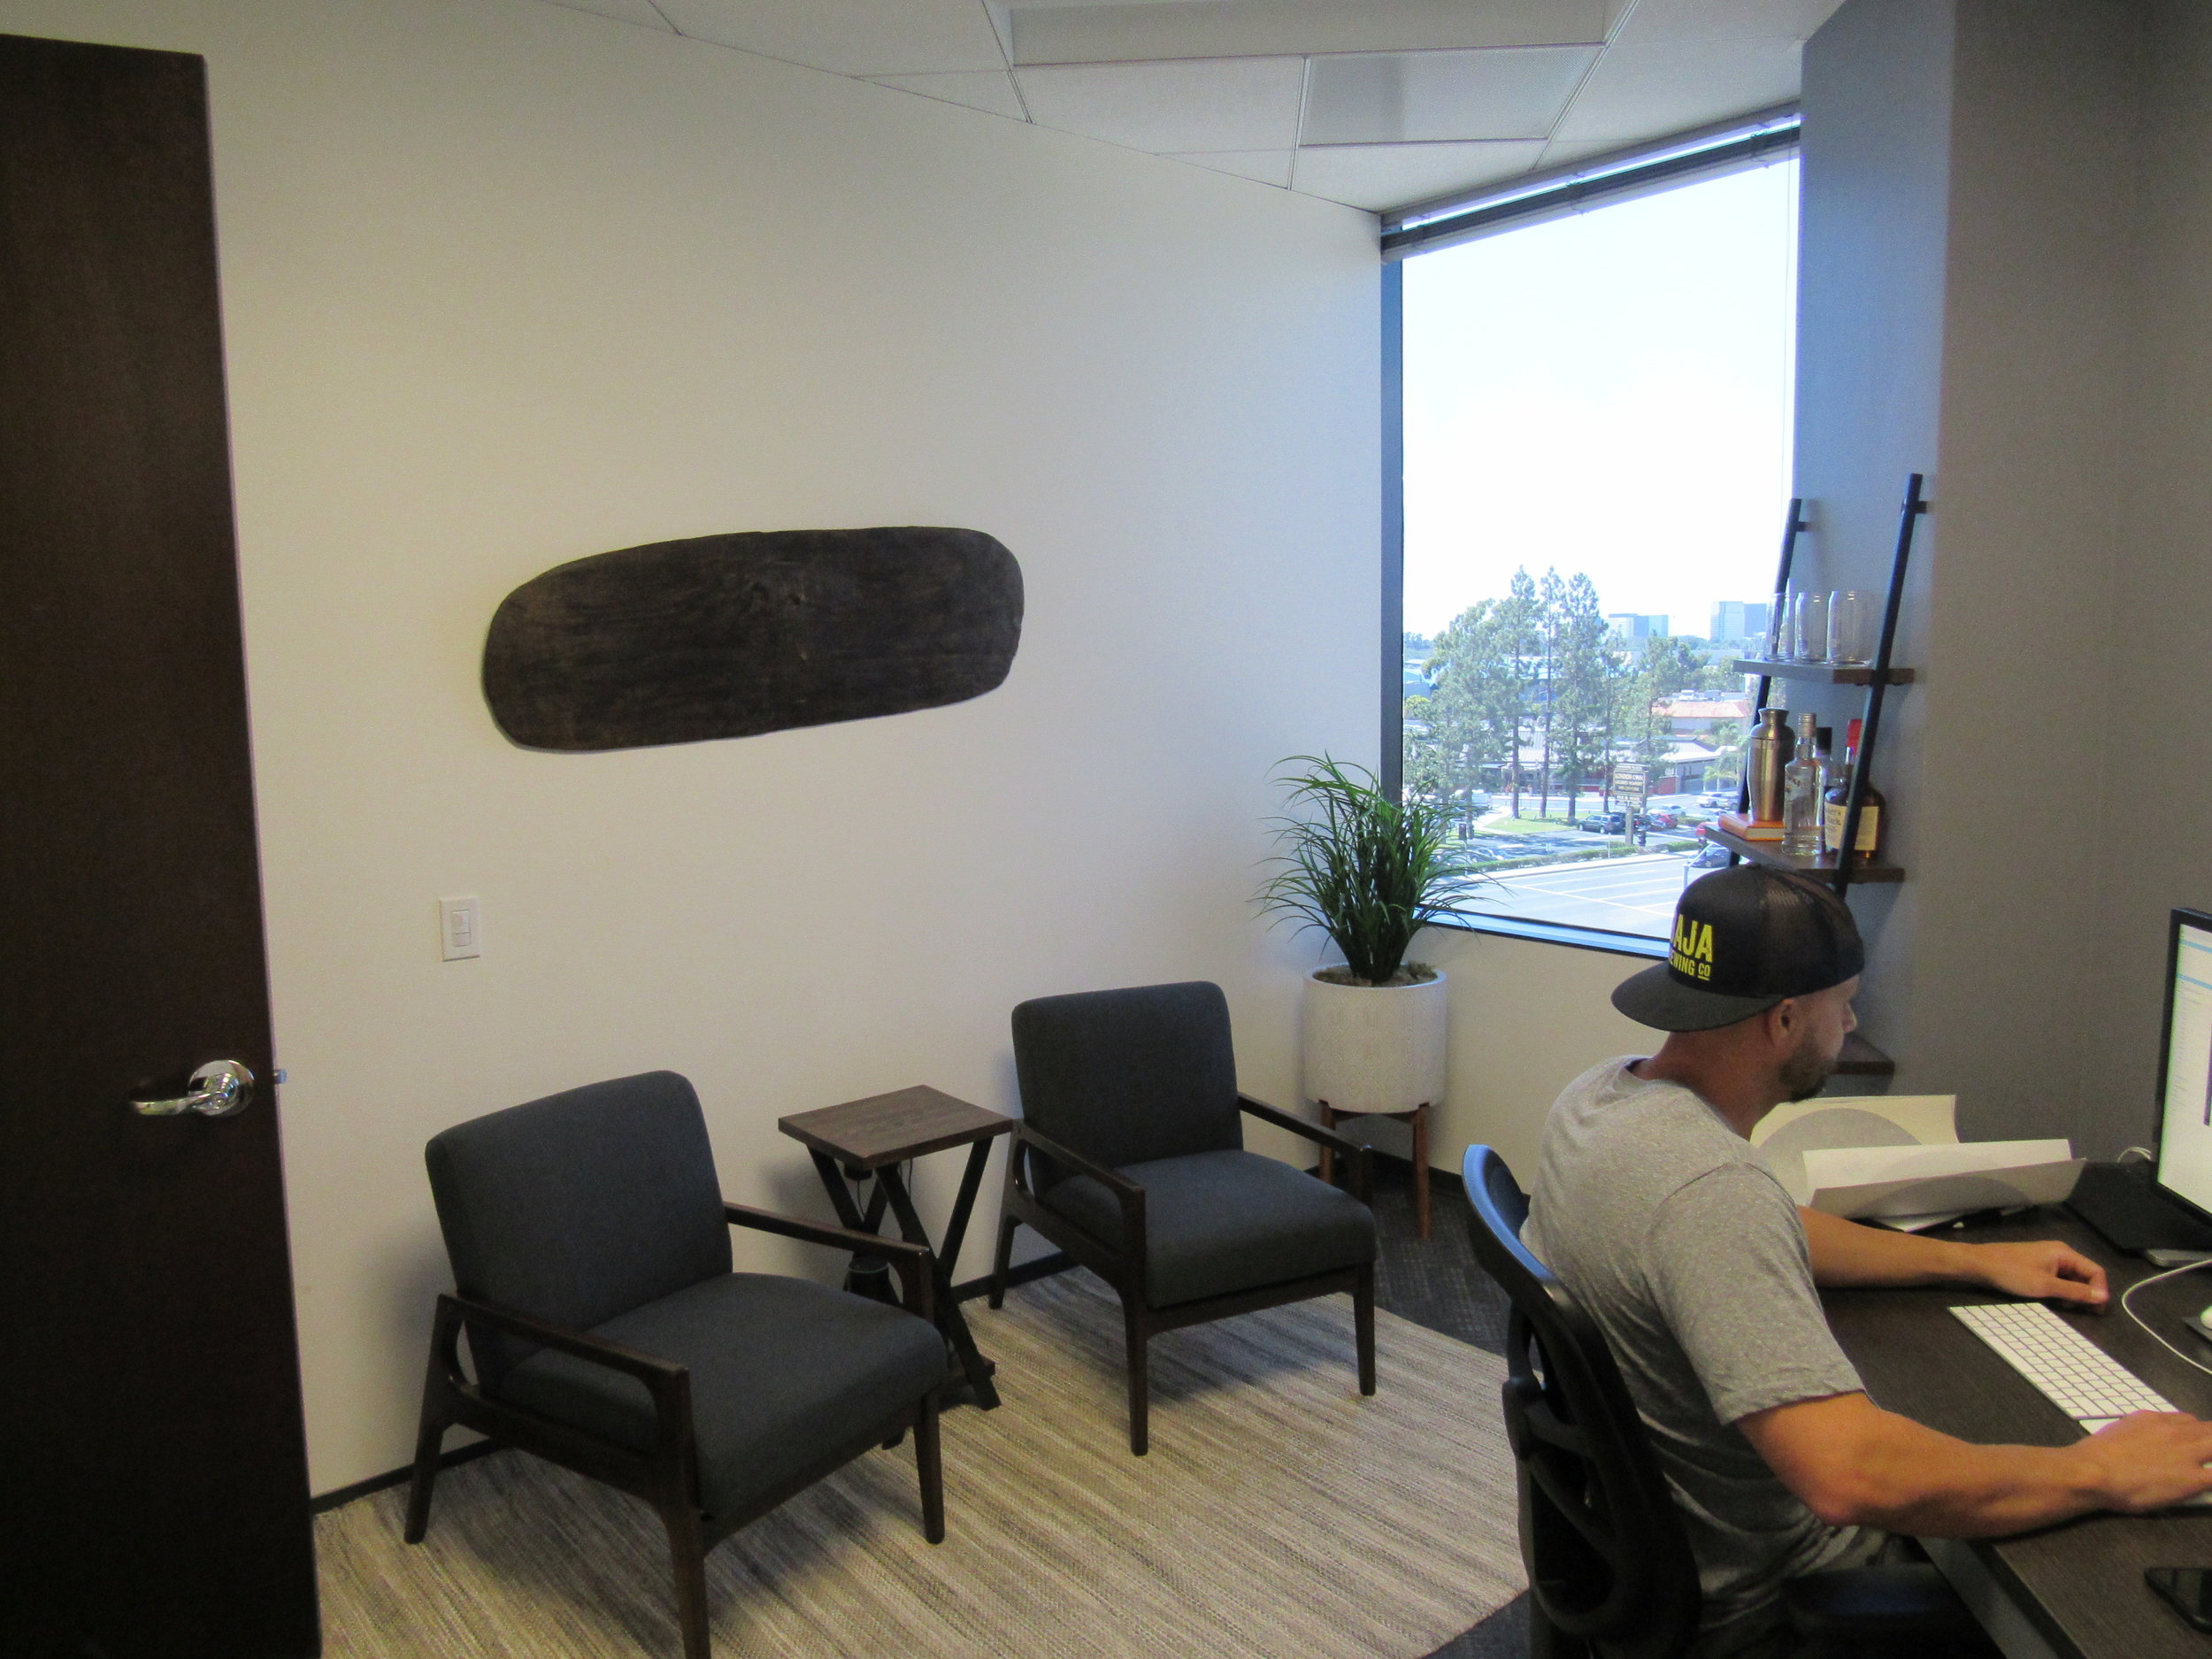 PRIVATE OFFICE - Starts at $500/monthWorkdays Per Month: UnlimitedAccess: 24/7Wifi: DUH!Conference Rooms: 4 Free Hour/month + Member RateMailbox: Included